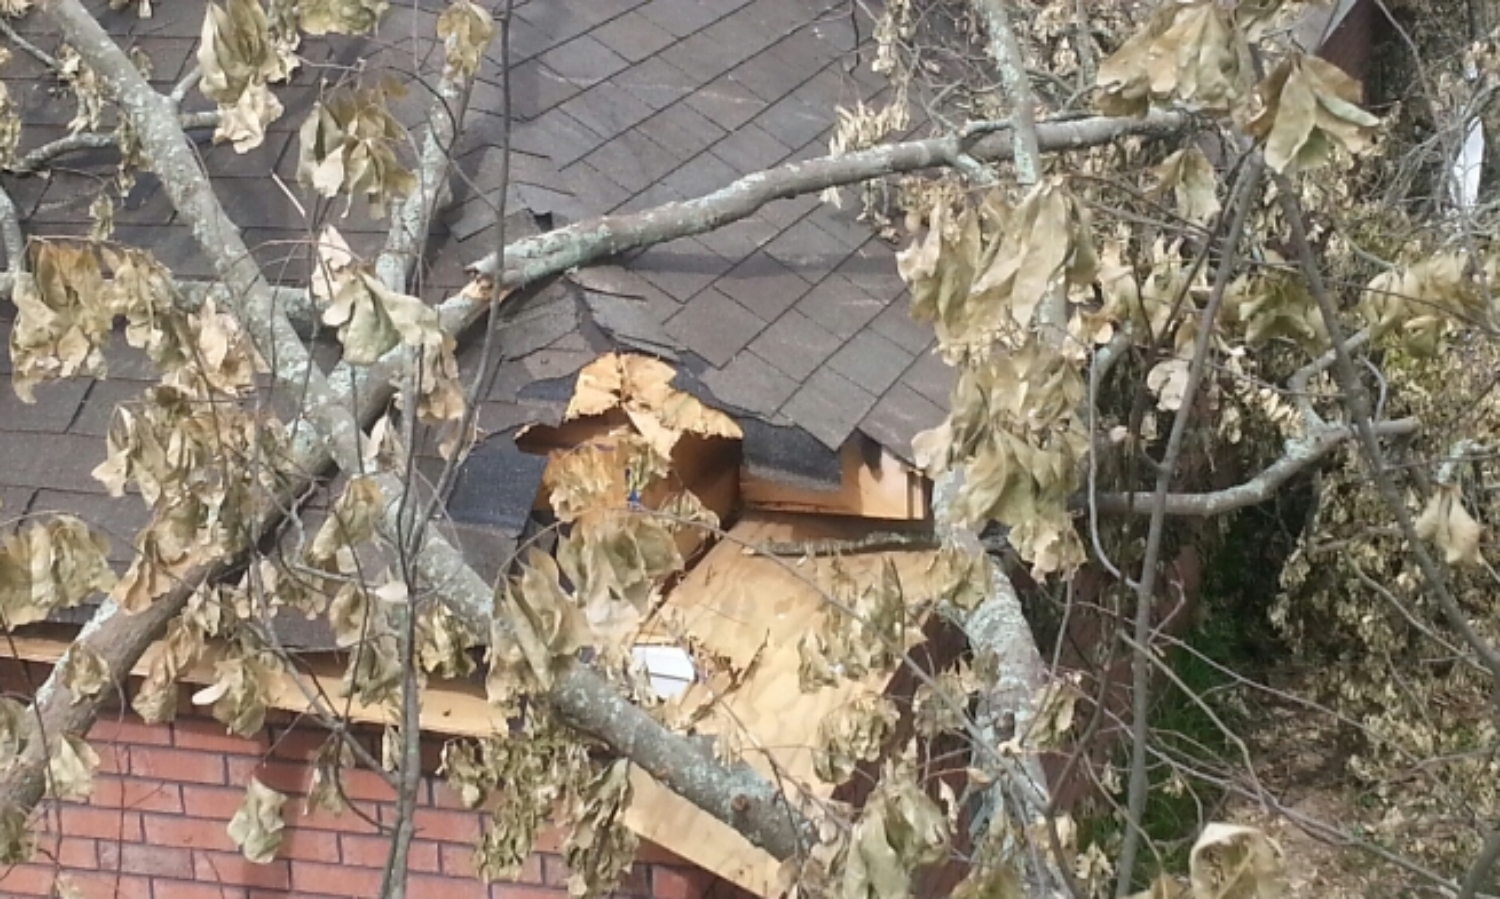 Tree debris removal and framing to close in roof to secure for waterproofing.